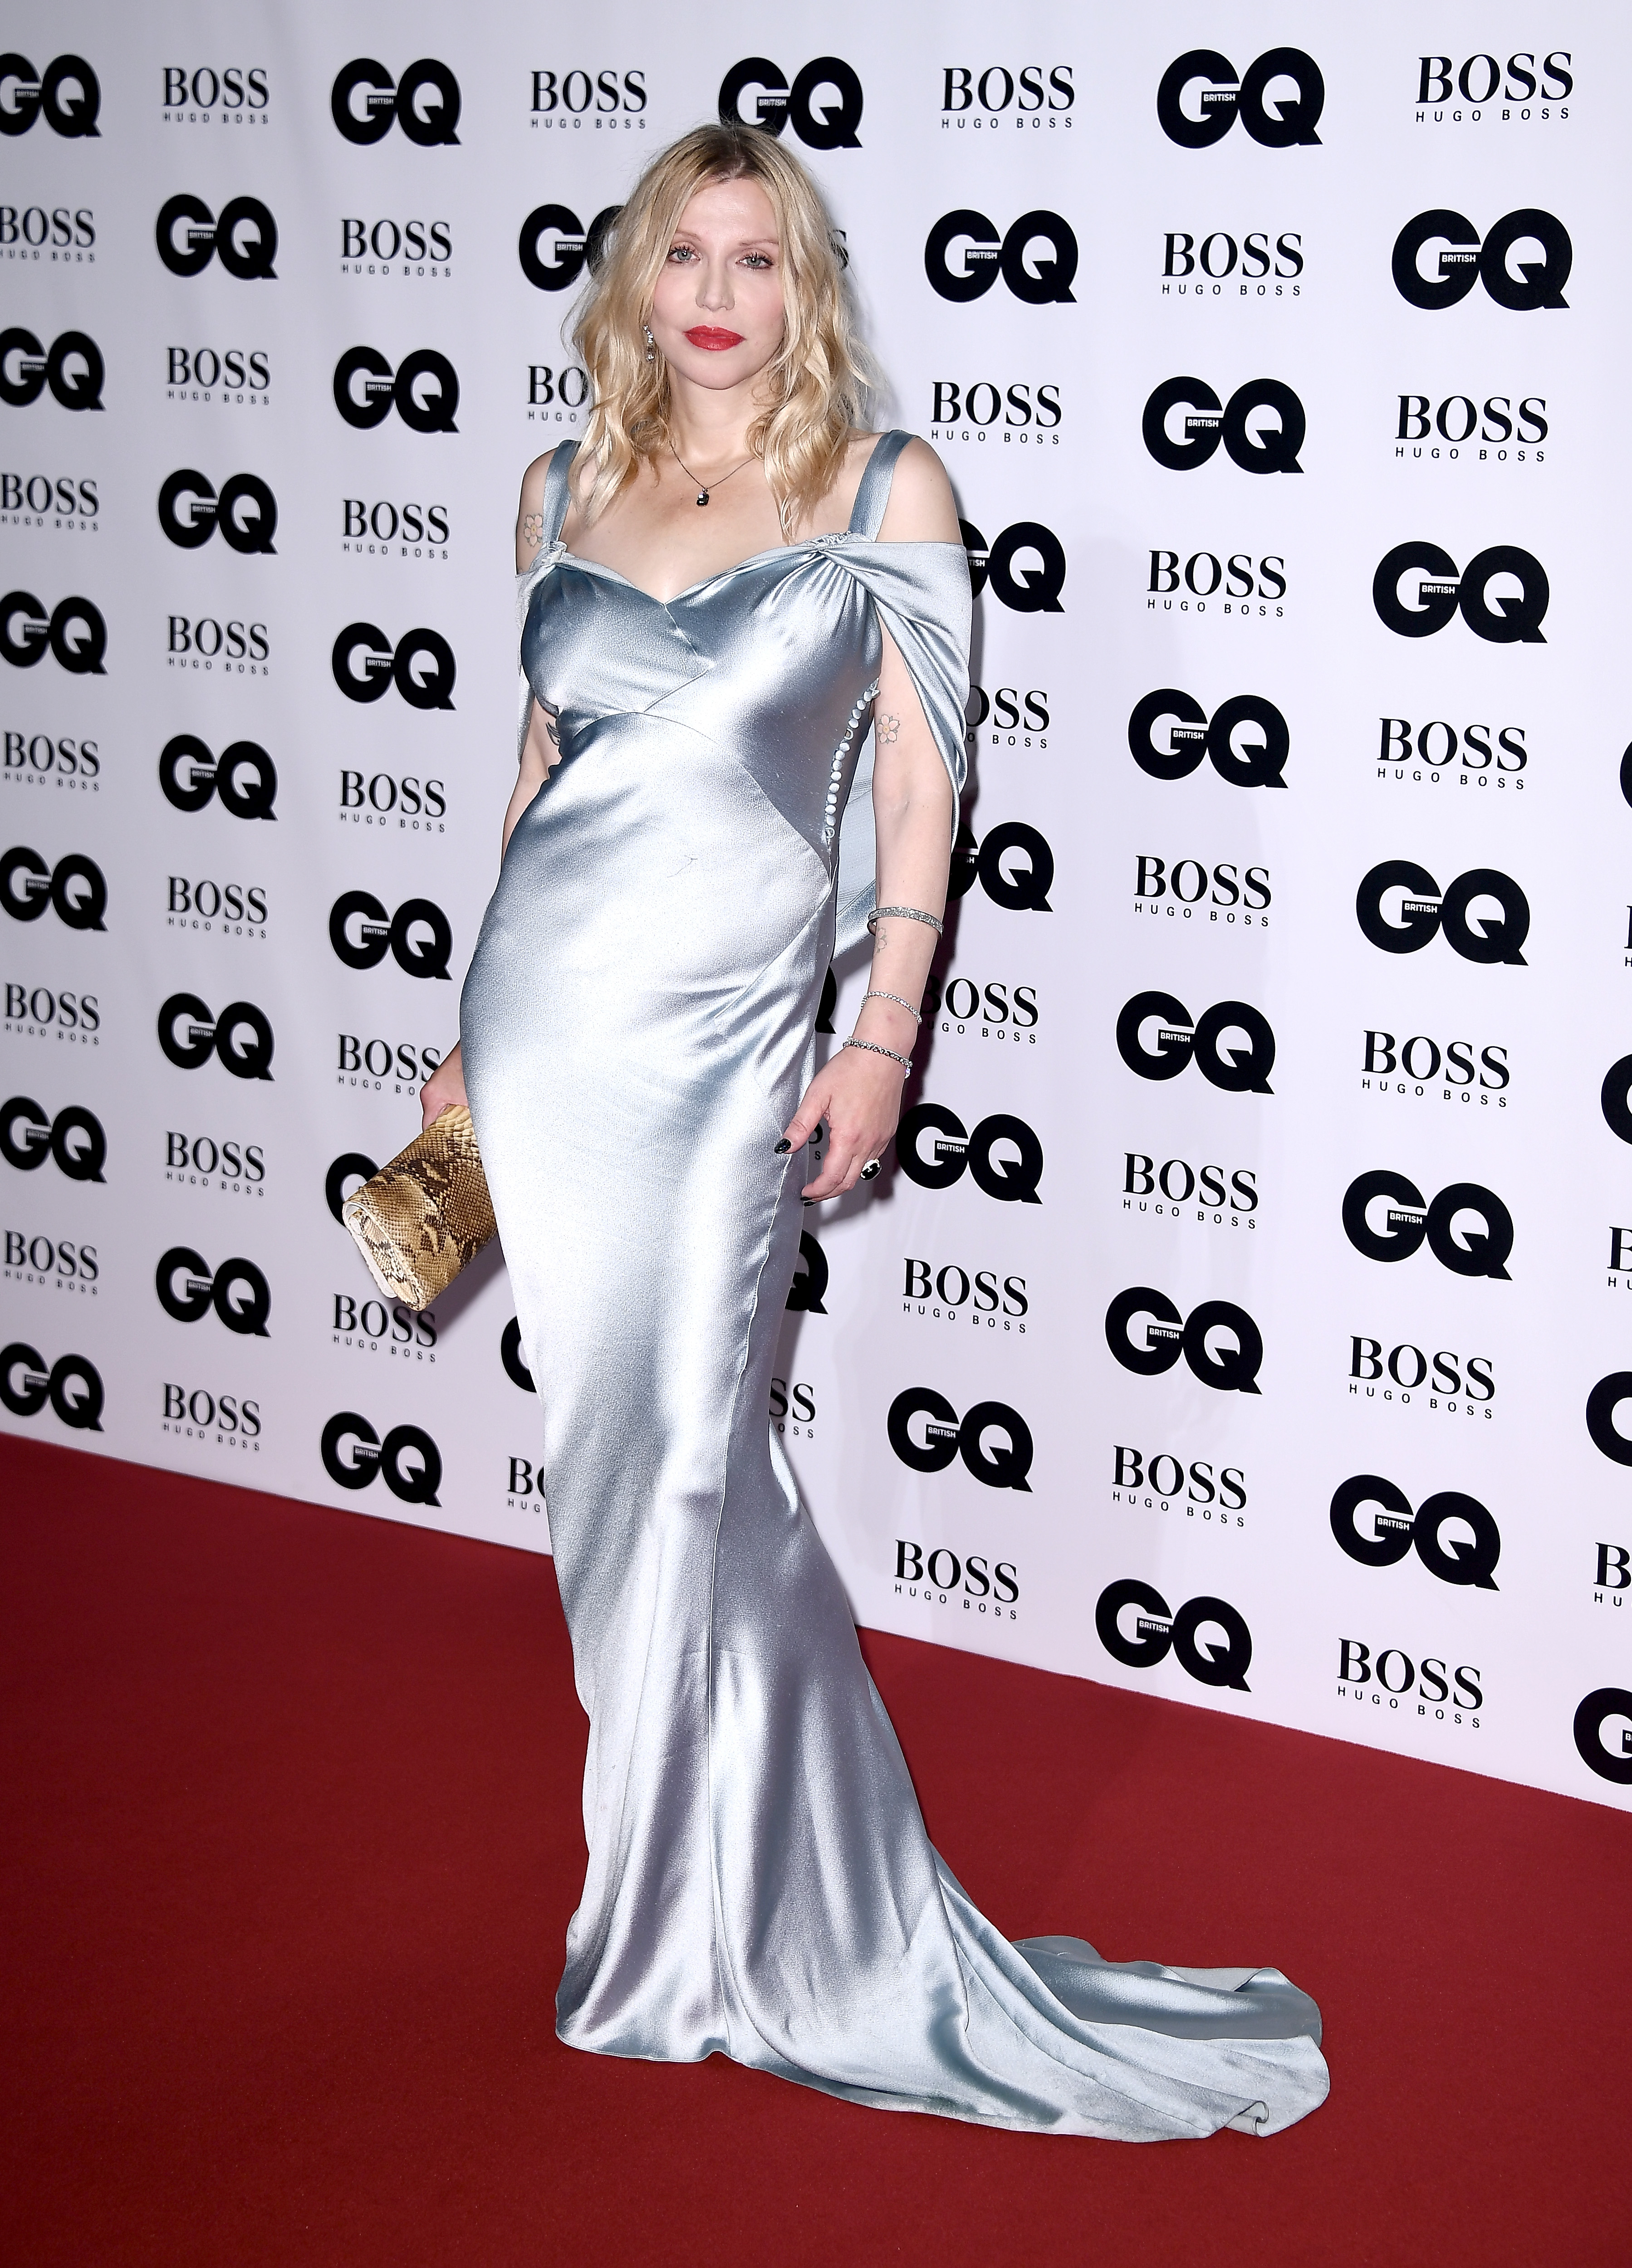 LONDON, ENGLAND - SEPTEMBER 05:  Courtney Love attends the GQ Men Of The Year Awards at the Tate Modern on September 5, 2017 in London, England.  (Photo by Gareth Cattermole/Getty Images)